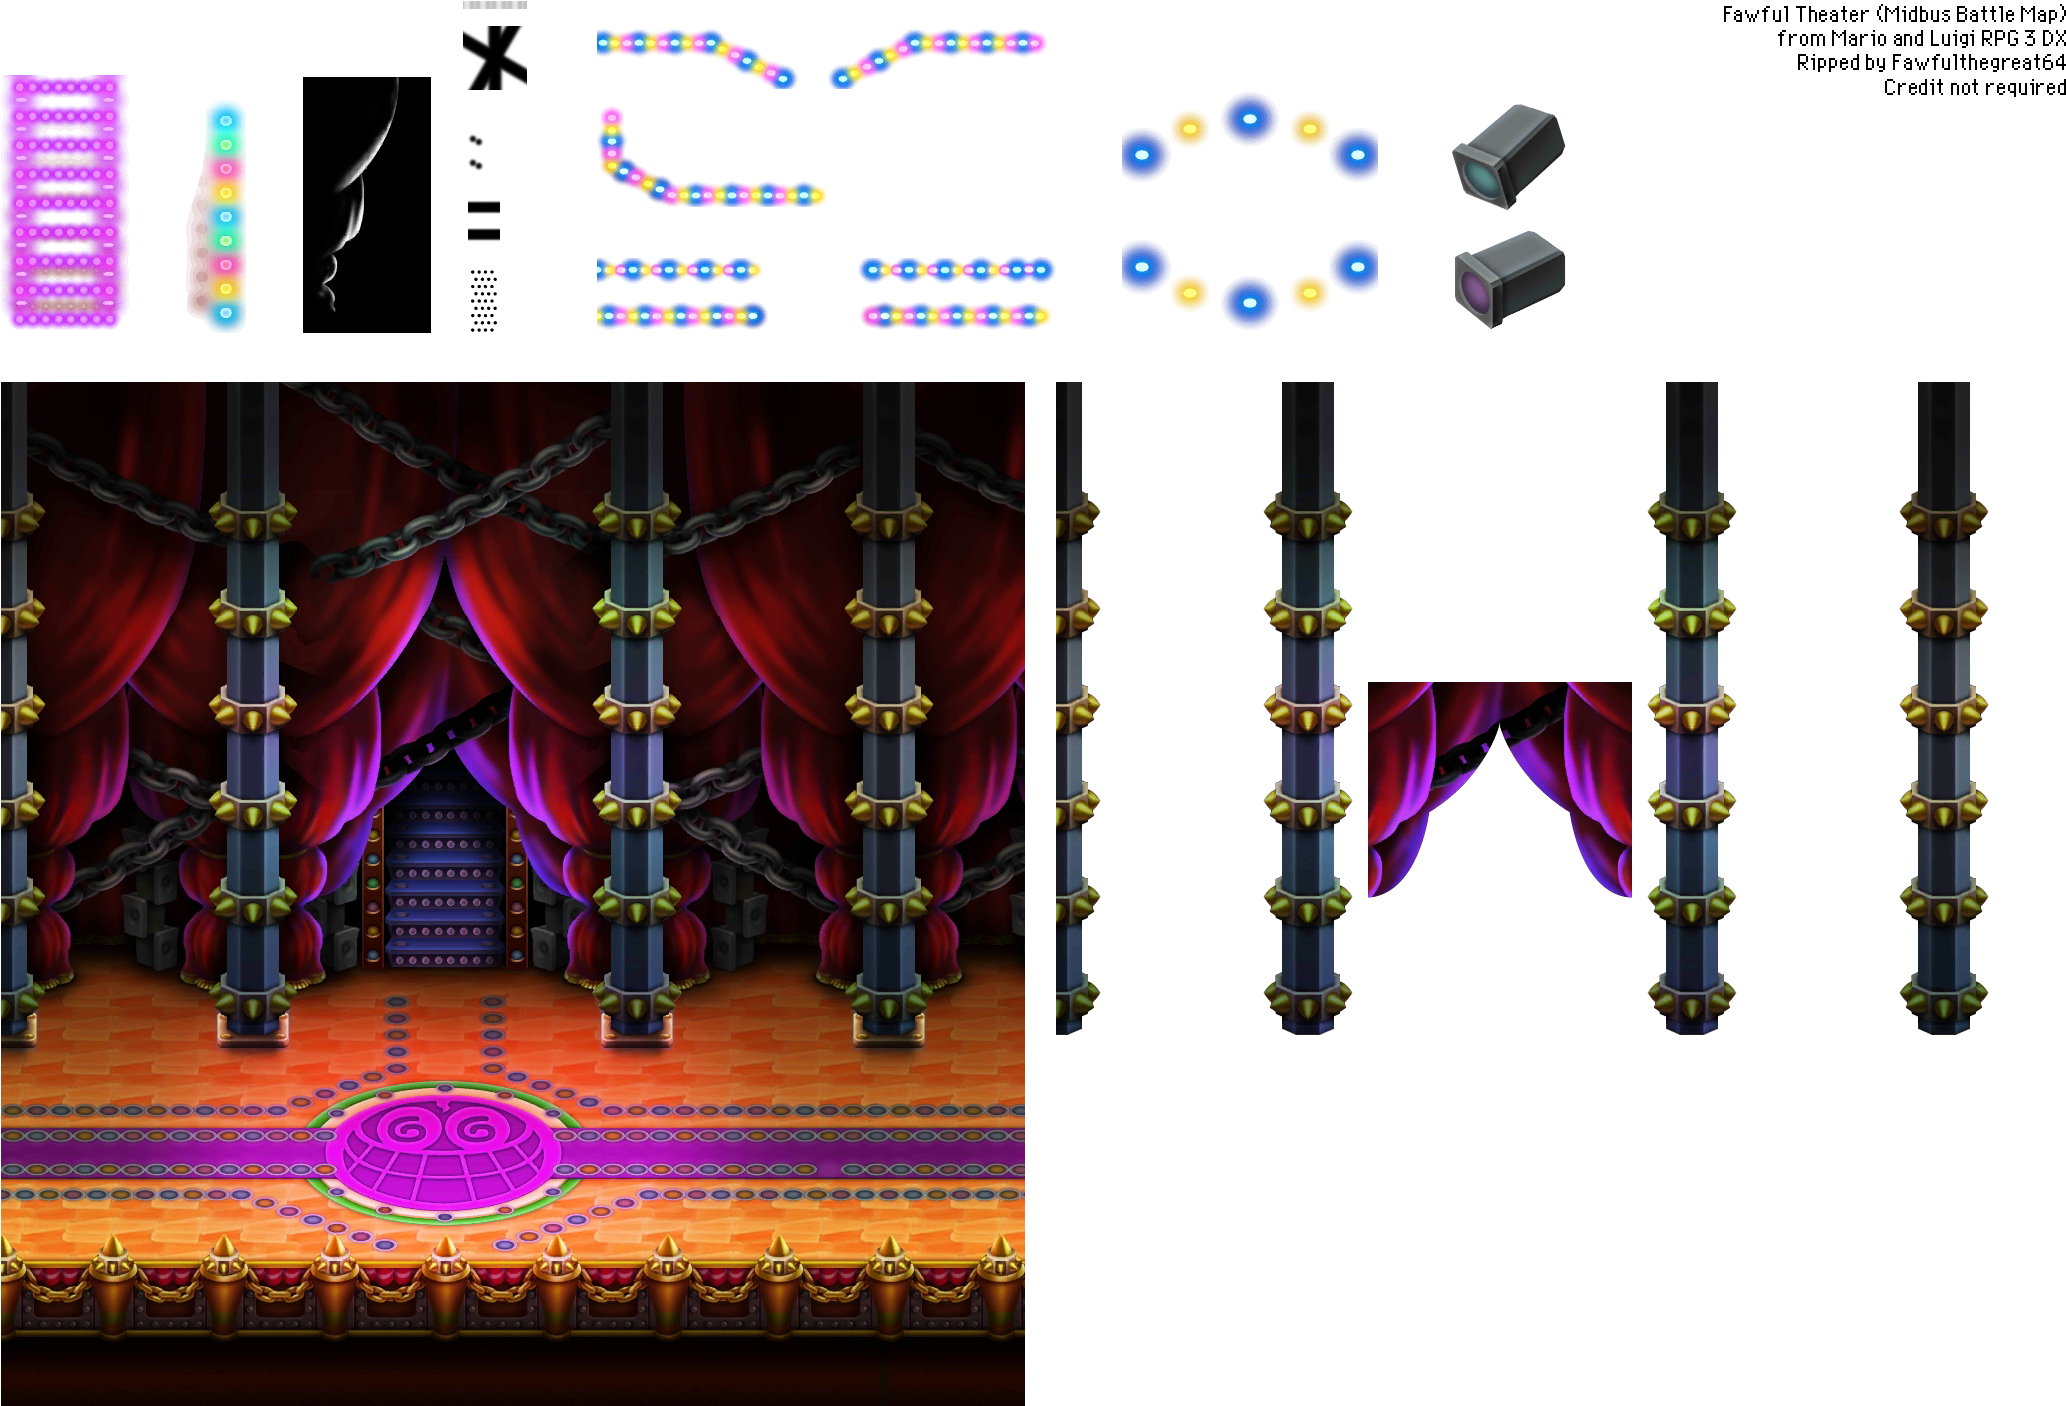 Download Hd Click For Full Sized Image Fawful Theater